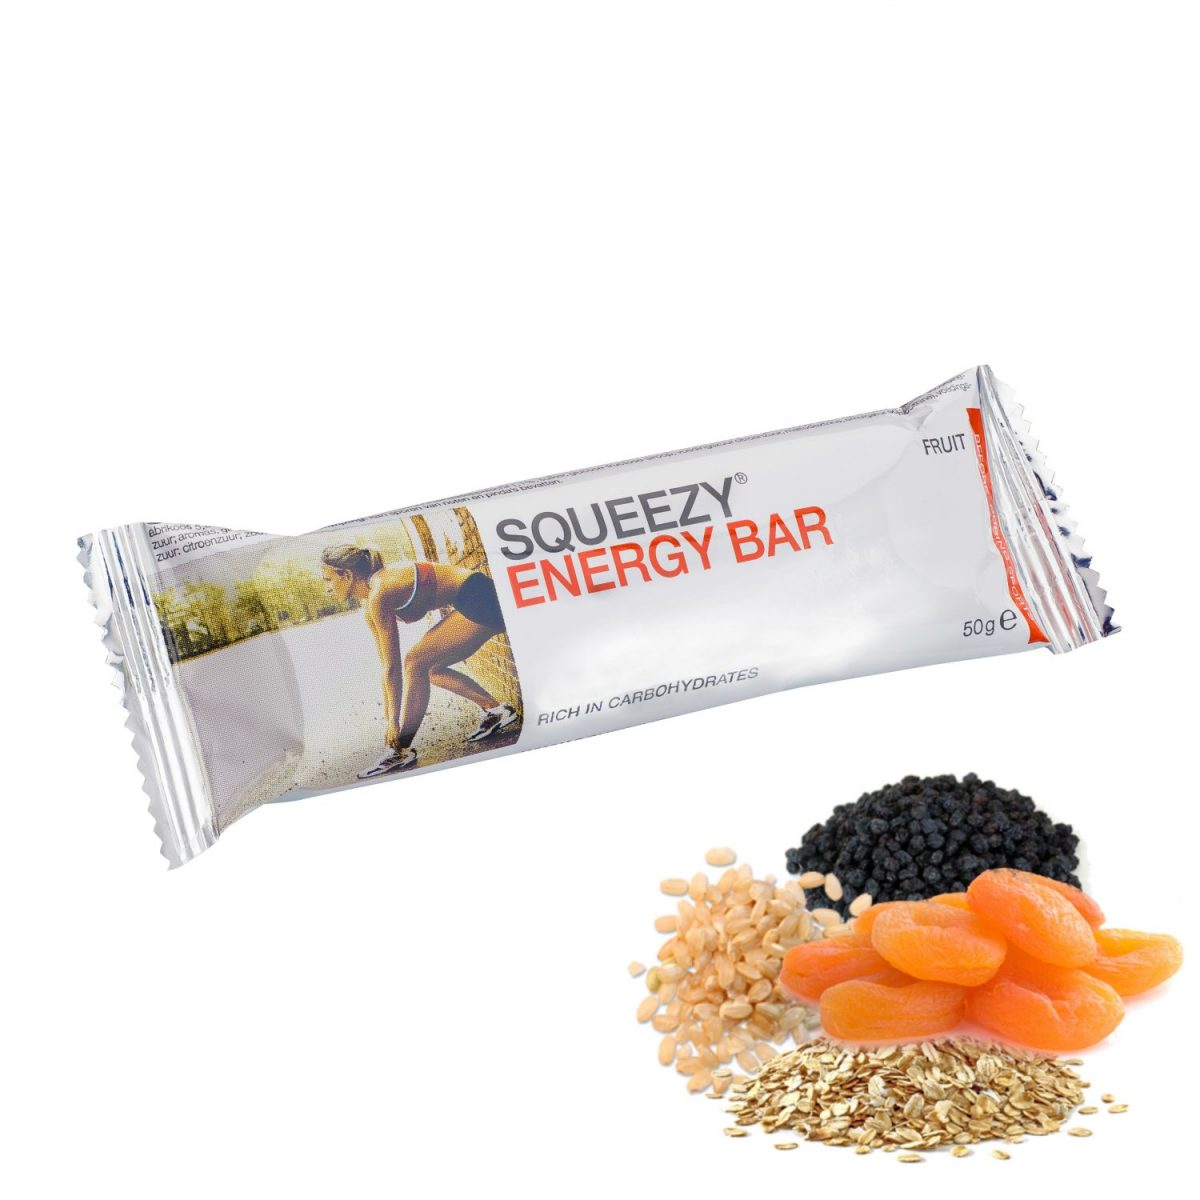 squeezy energy bar